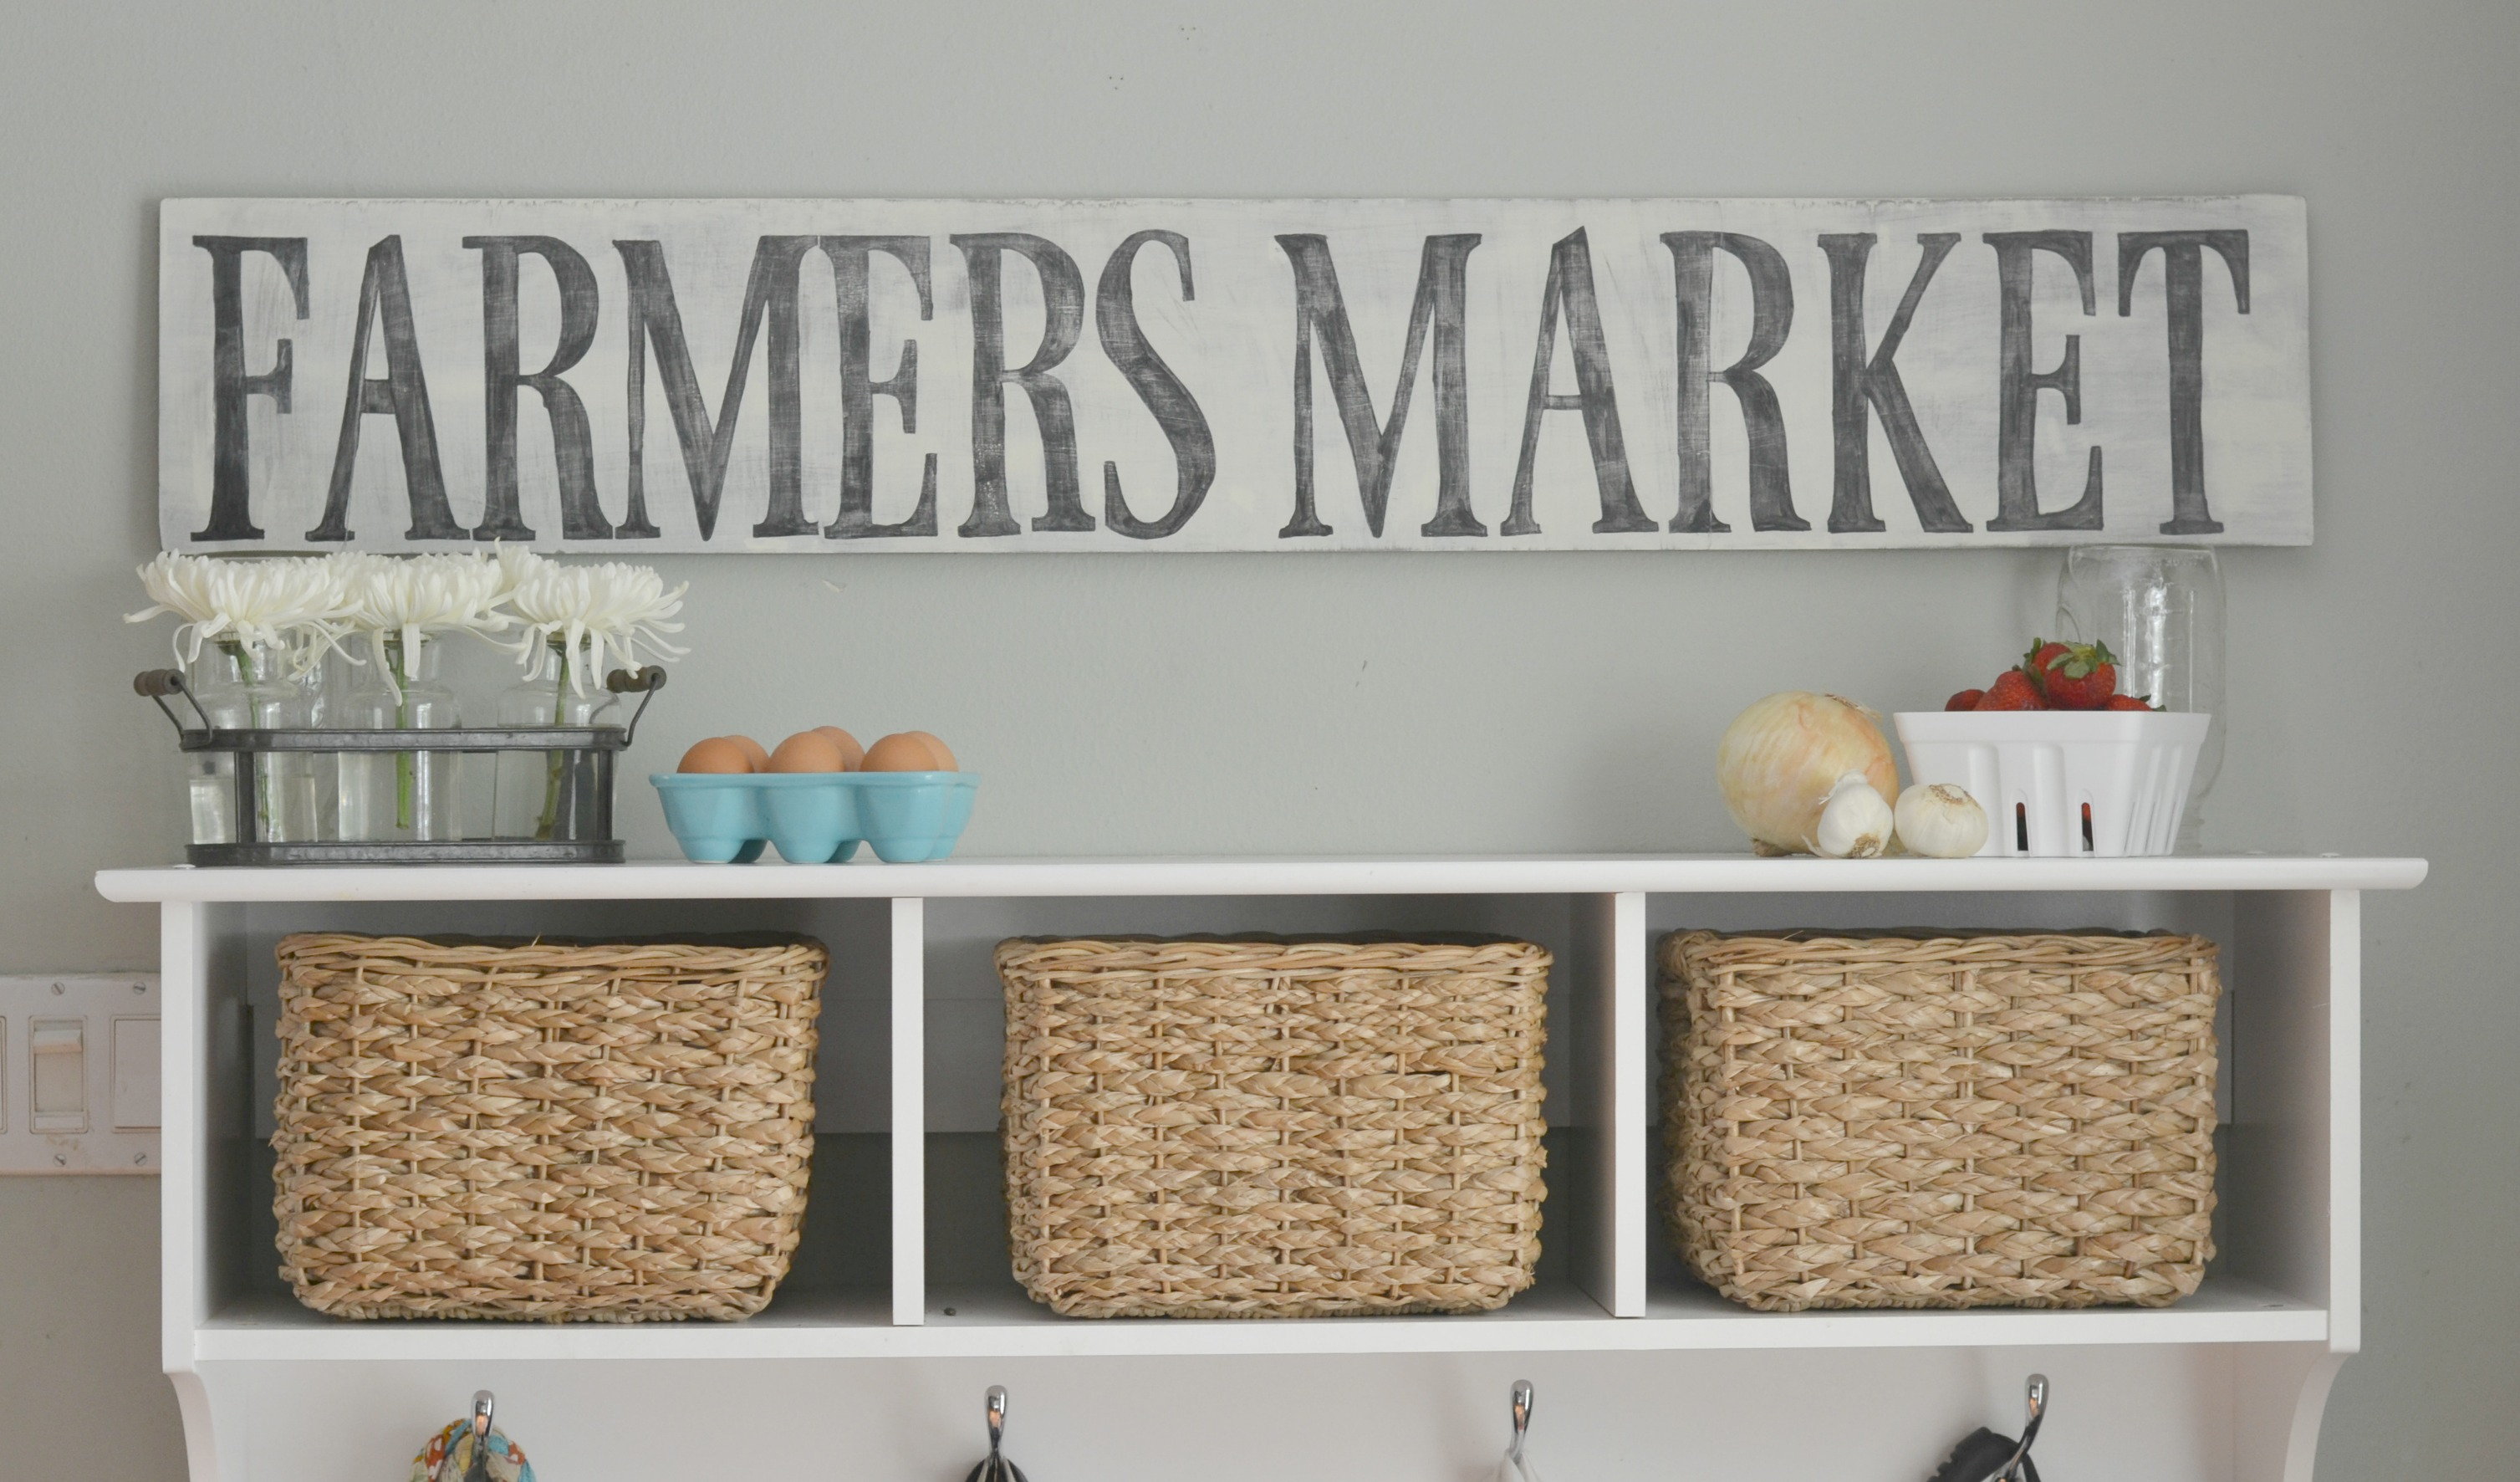 Easy DIY Wooden Sign - this tutorial is very easy to follow. DIY Wooden sign with frame. Rustic wooden sign with saying. 2 easy techniques on transferring graphics.